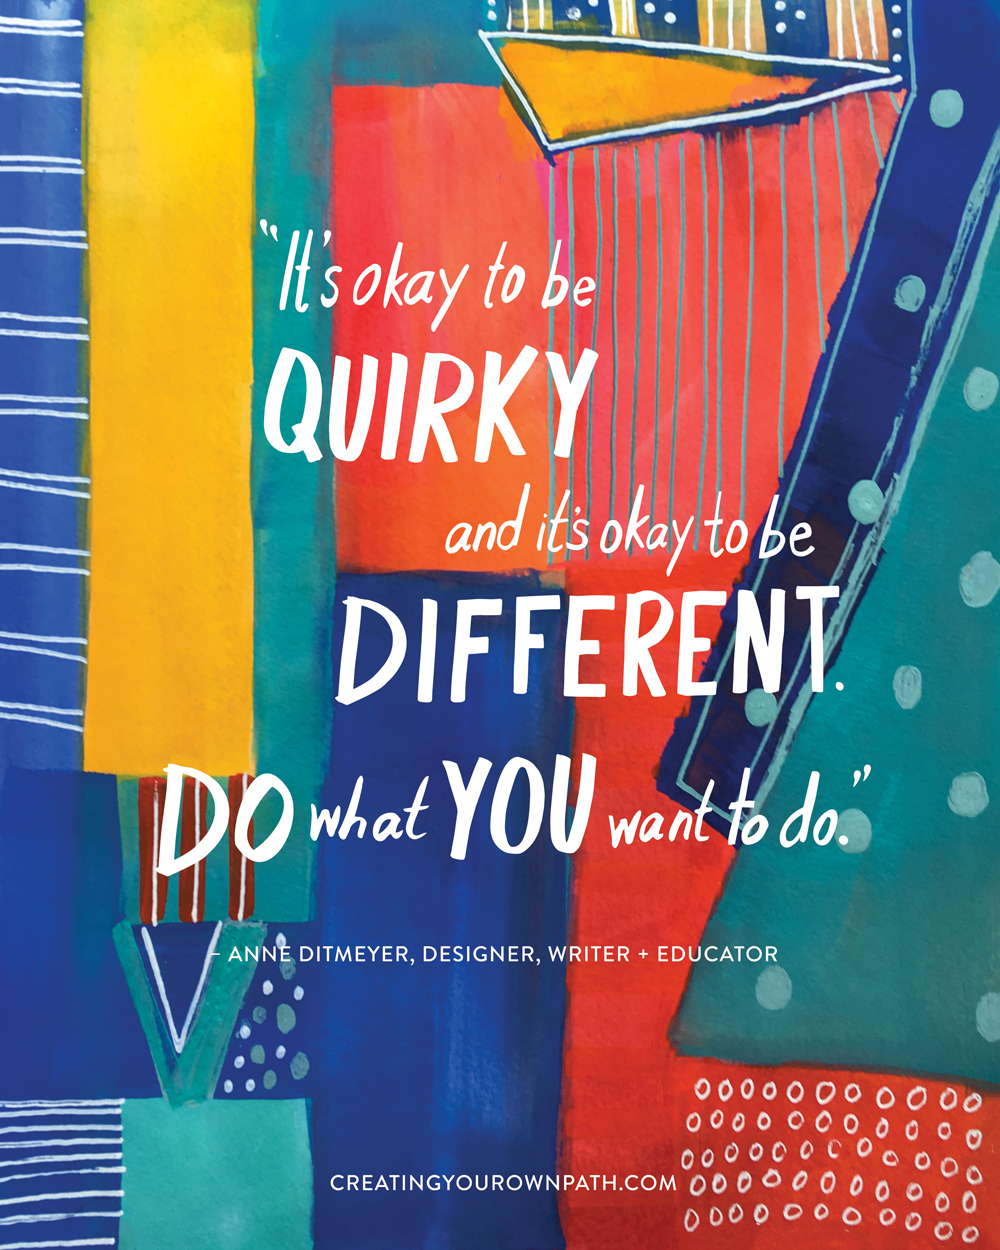 """It's okay to be quirky and it's okay to be different. Do what you want to do."" — Anne Ditmeyer, Designer, Writer + Educator // Art by  Melanie Biehle"